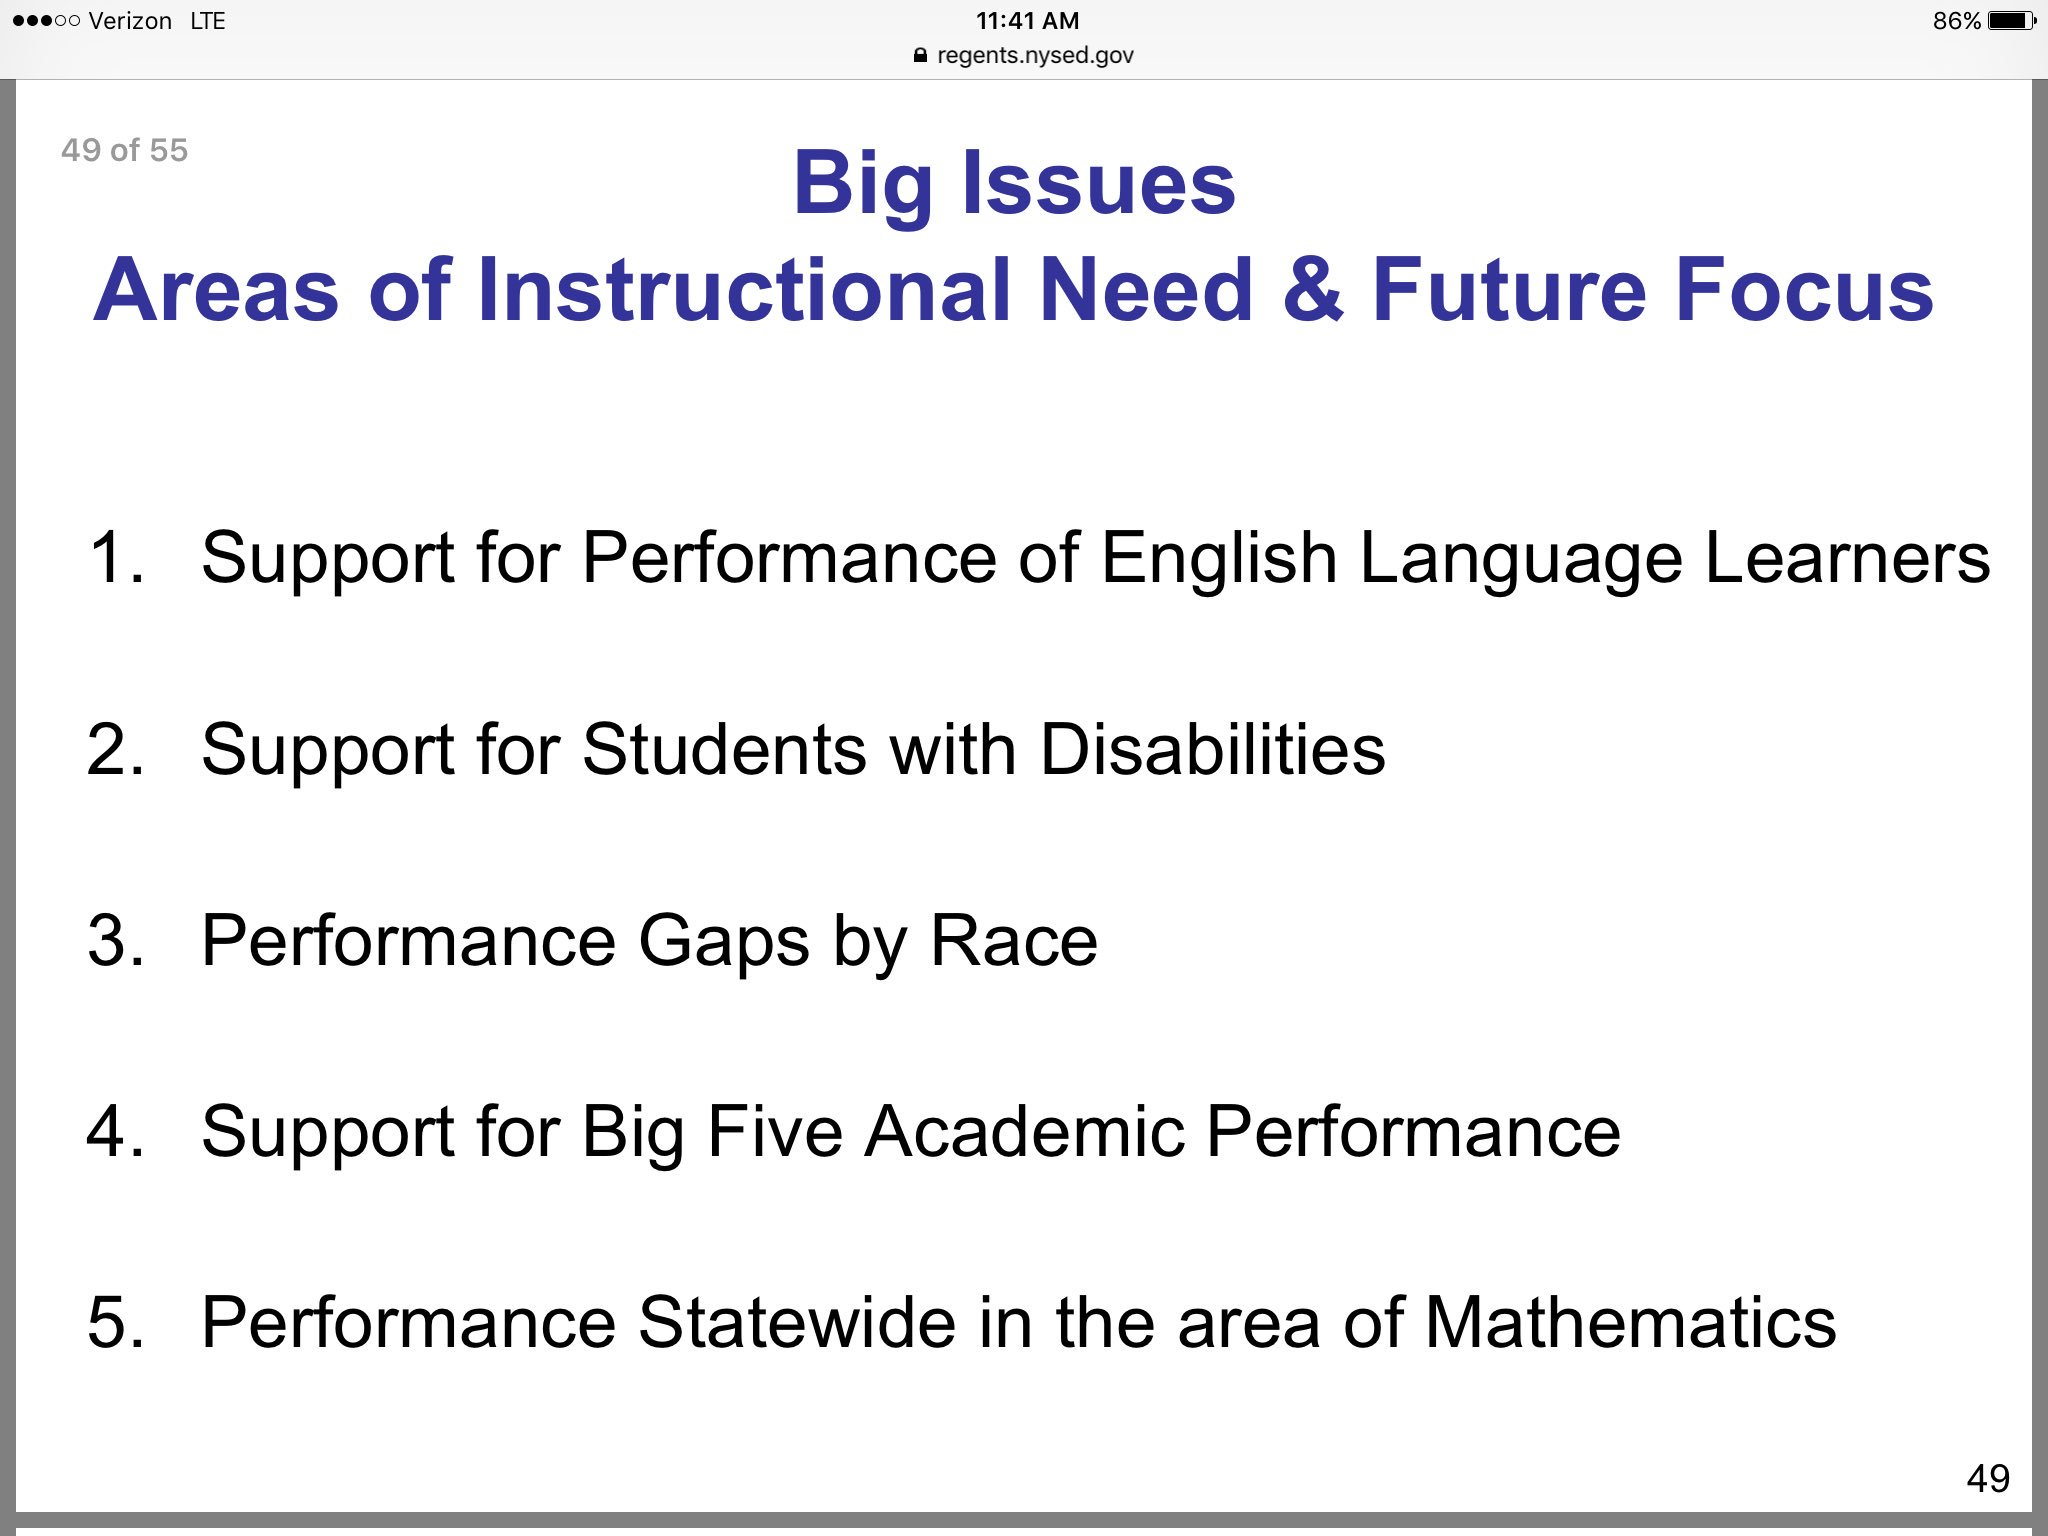 "From presentation on results, @NYSEDNews ""Big Issues"" to address, as FYI @NYSPTA https://t.co/D9EcmLO9pX"